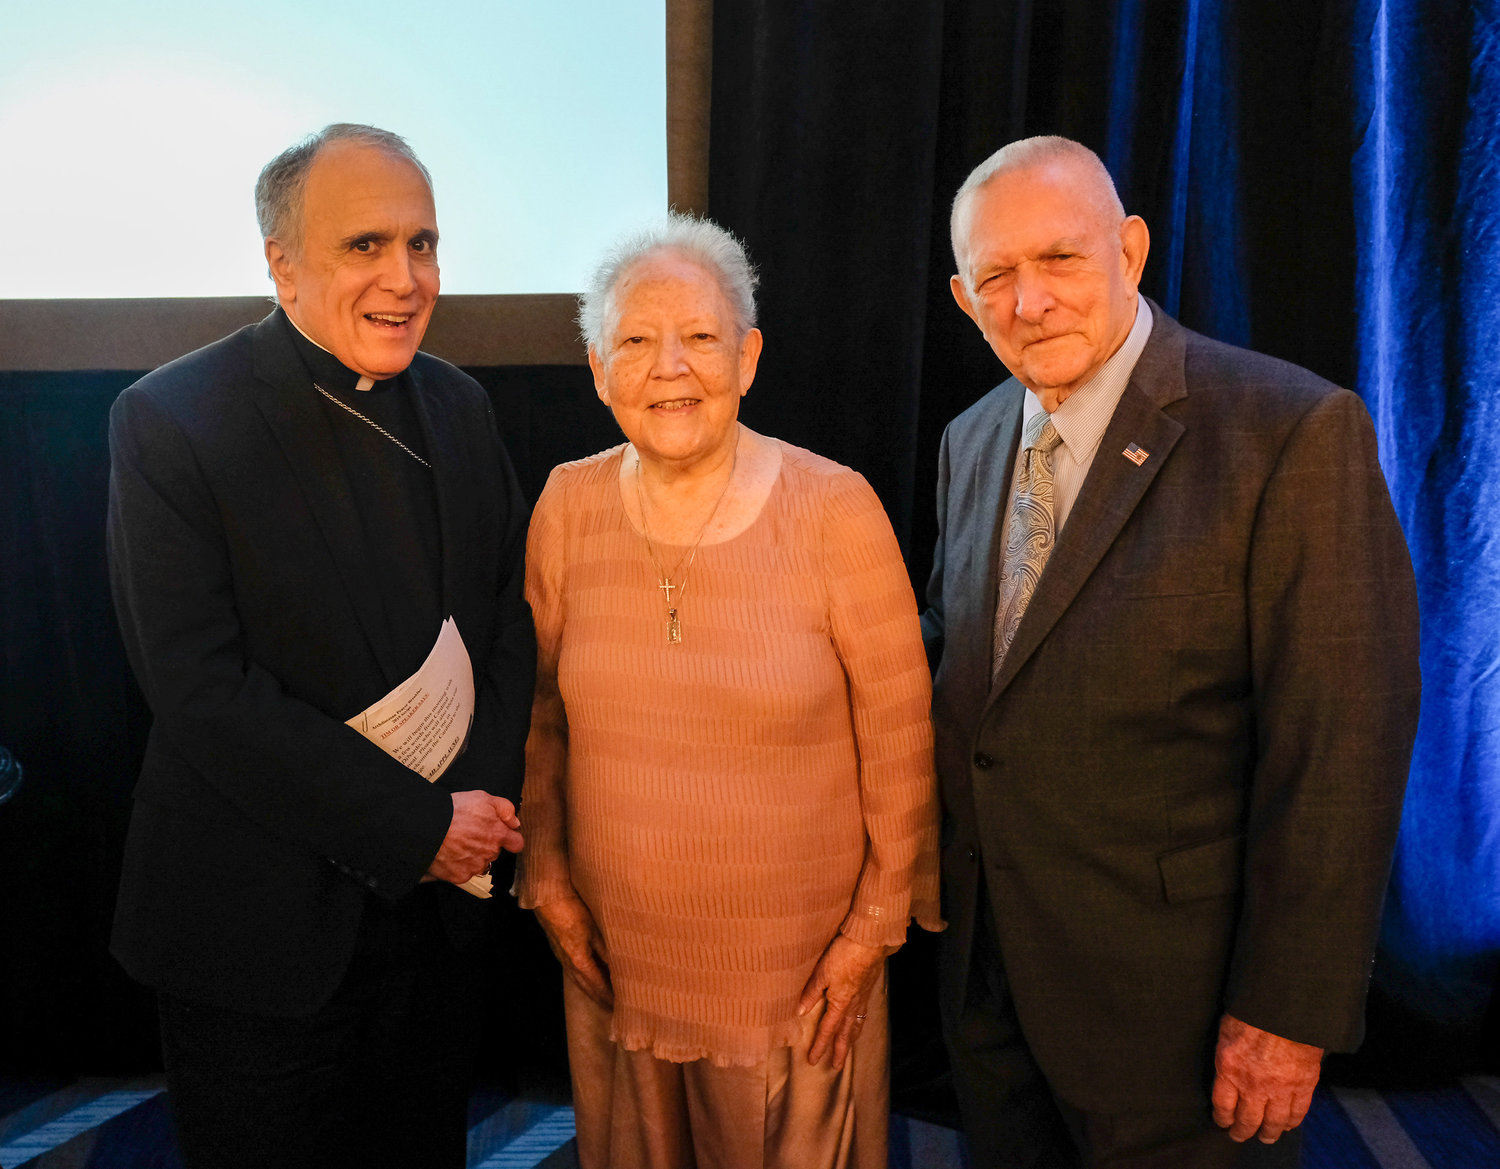 Cardinal Daniel N. DiNardo of Galveston-Houston poses with Gene Kranz, right, former flight director for Apollo 11, and his wife, Marta, during the 2019 Archdiocese of Galveston-Houston Prayer Breakfast in Houston July 30. Gene Kranz, who served as the event's speaker, is a parishioner at Shrine of the True Cross Catholic Church in Dickinson, Texas, near Houston.